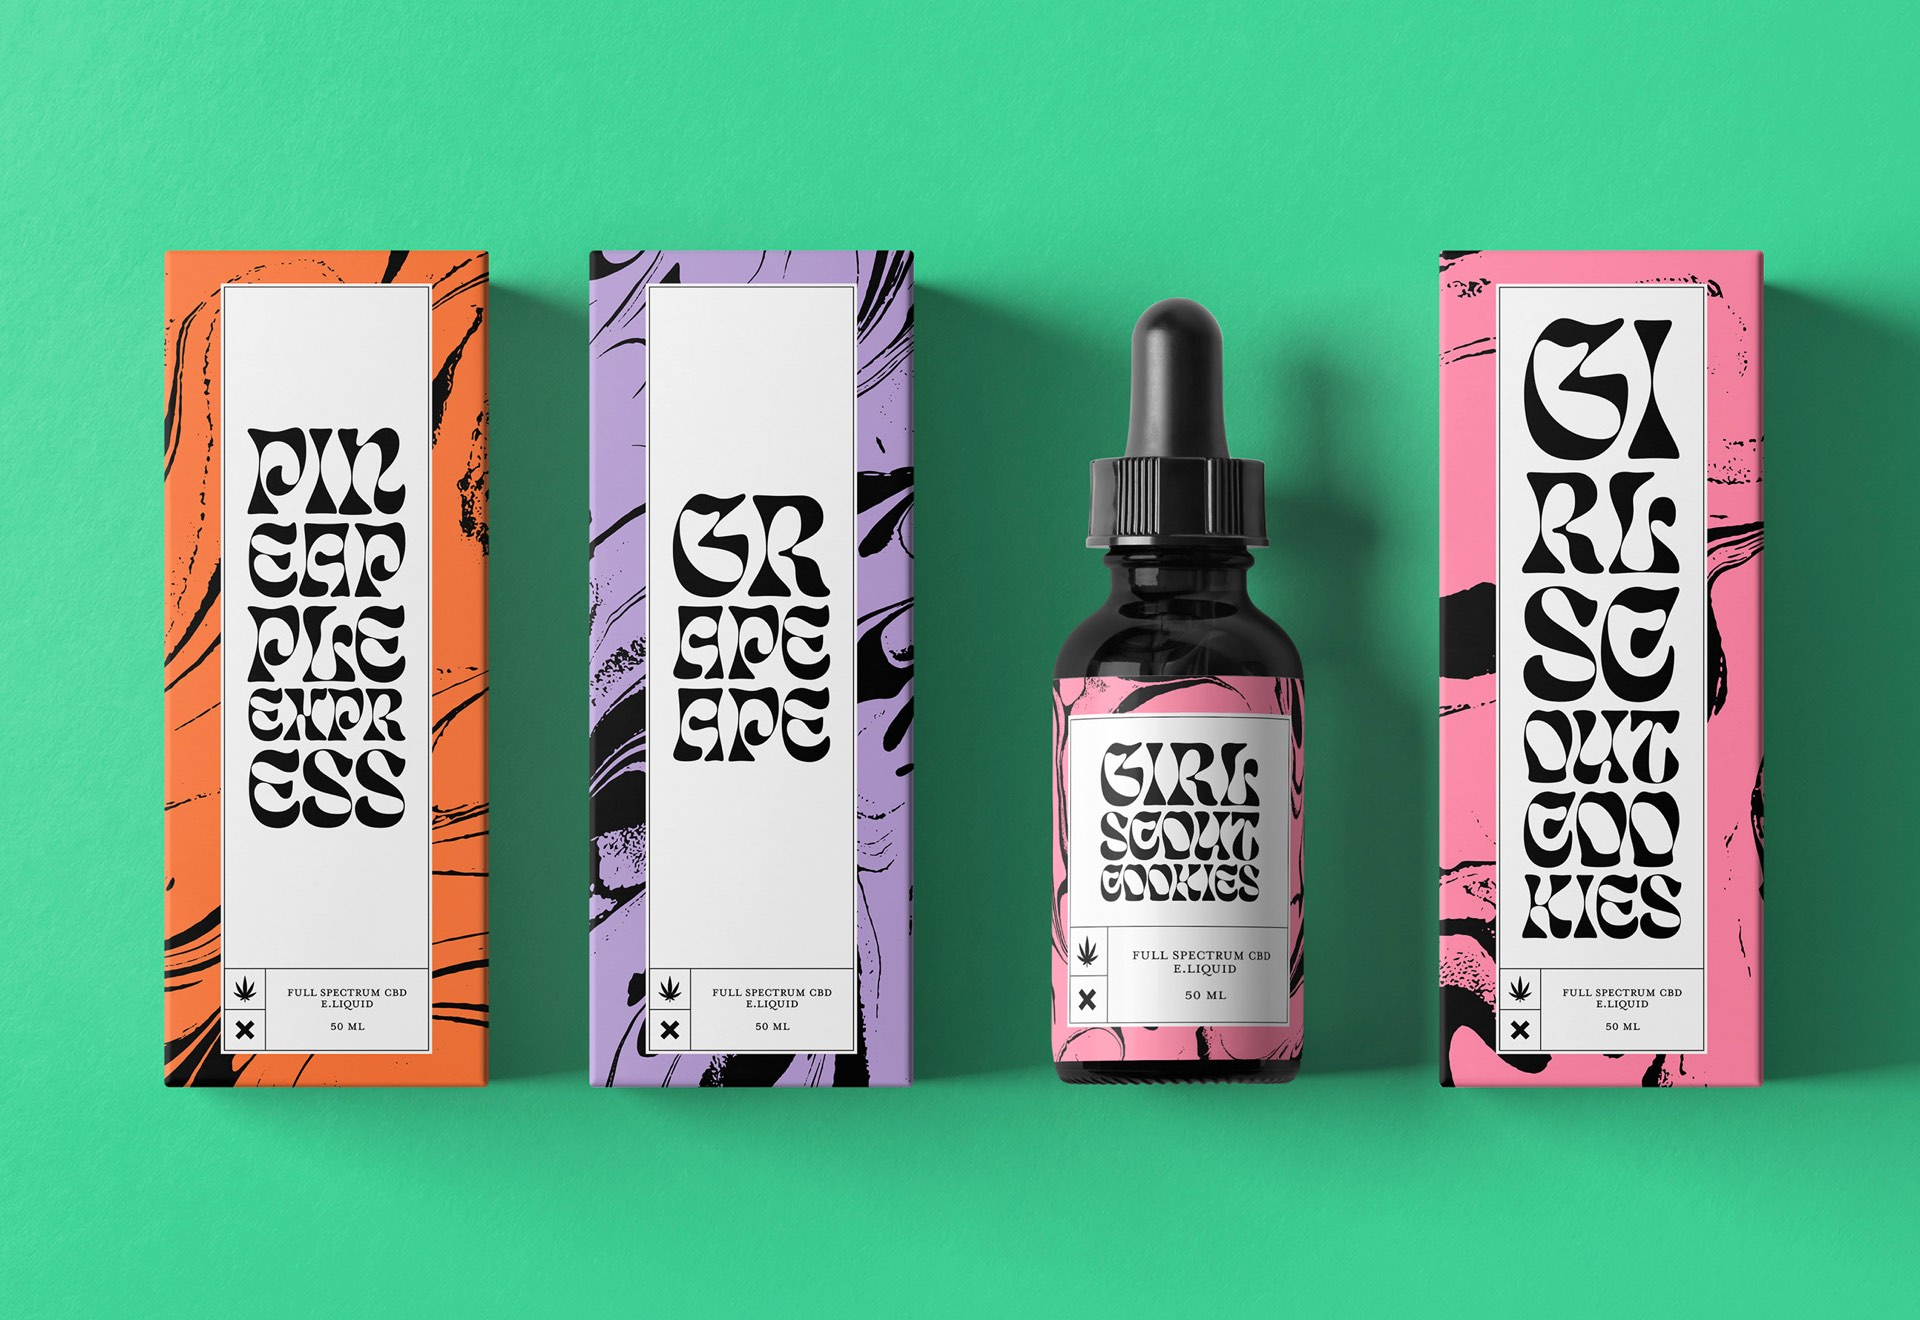 CBD Oil Products Branding